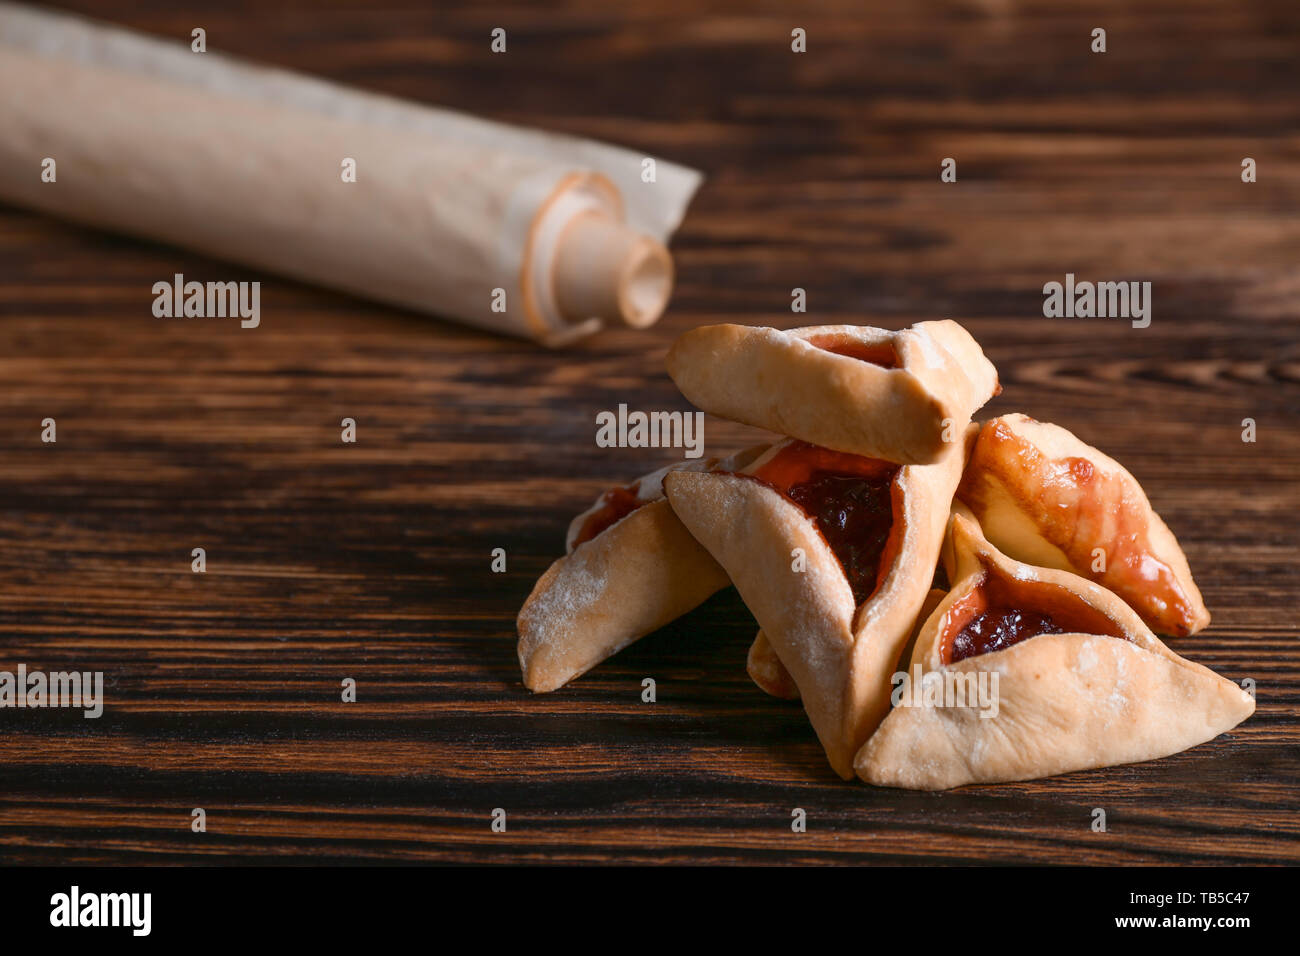 Hamantaschen and the Scroll of Esther on wooden table. Purim celebration - Stock Image